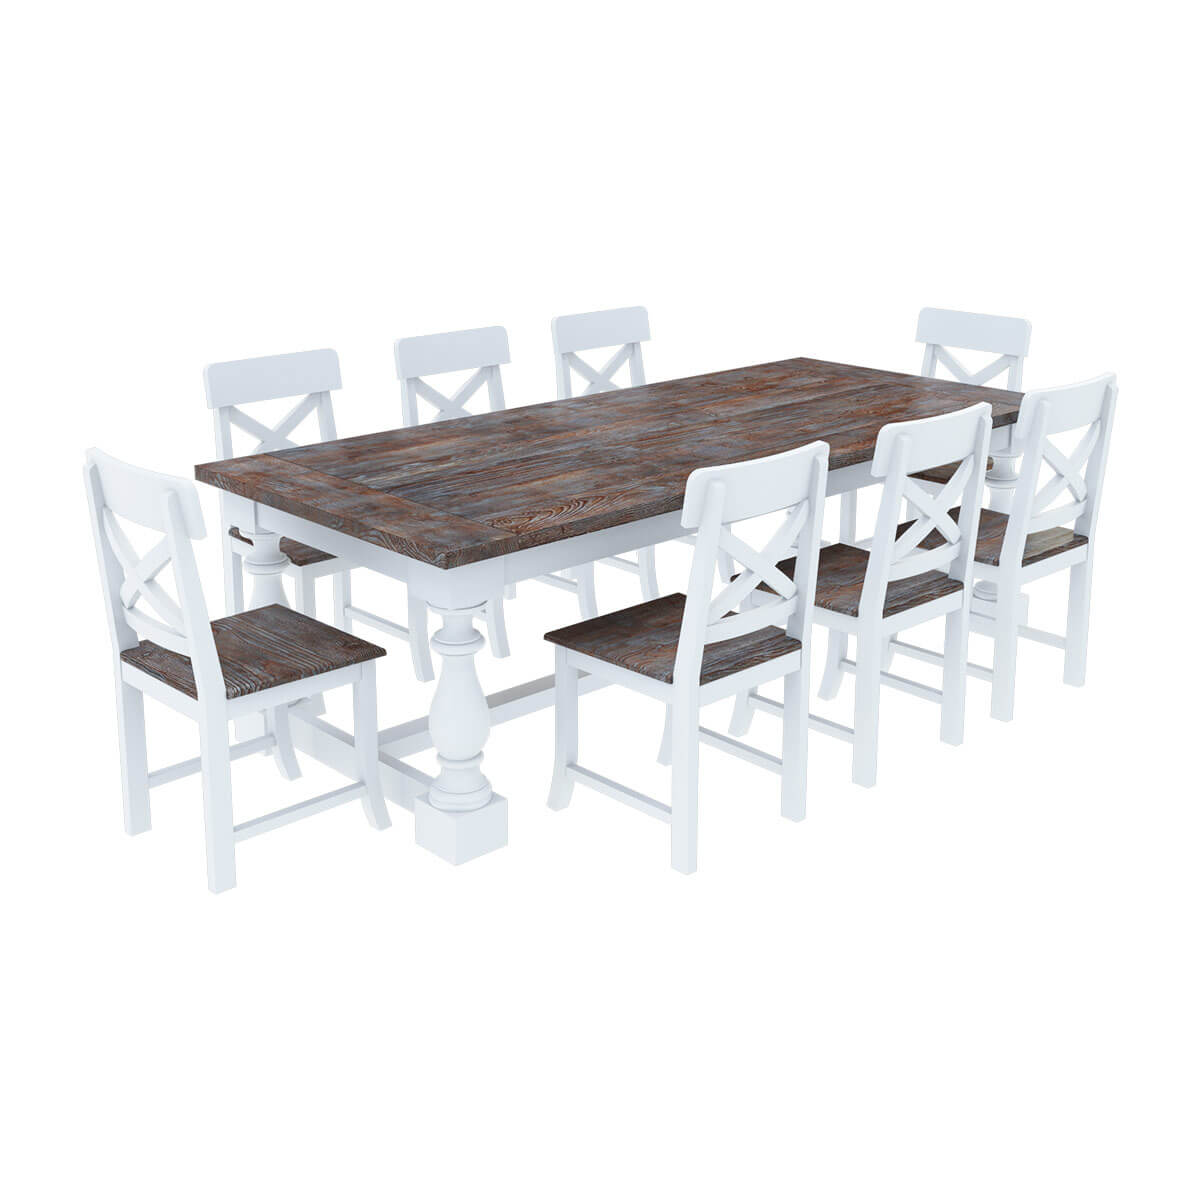 Danville Modern Teak And Solid Wood Dining Table With 8